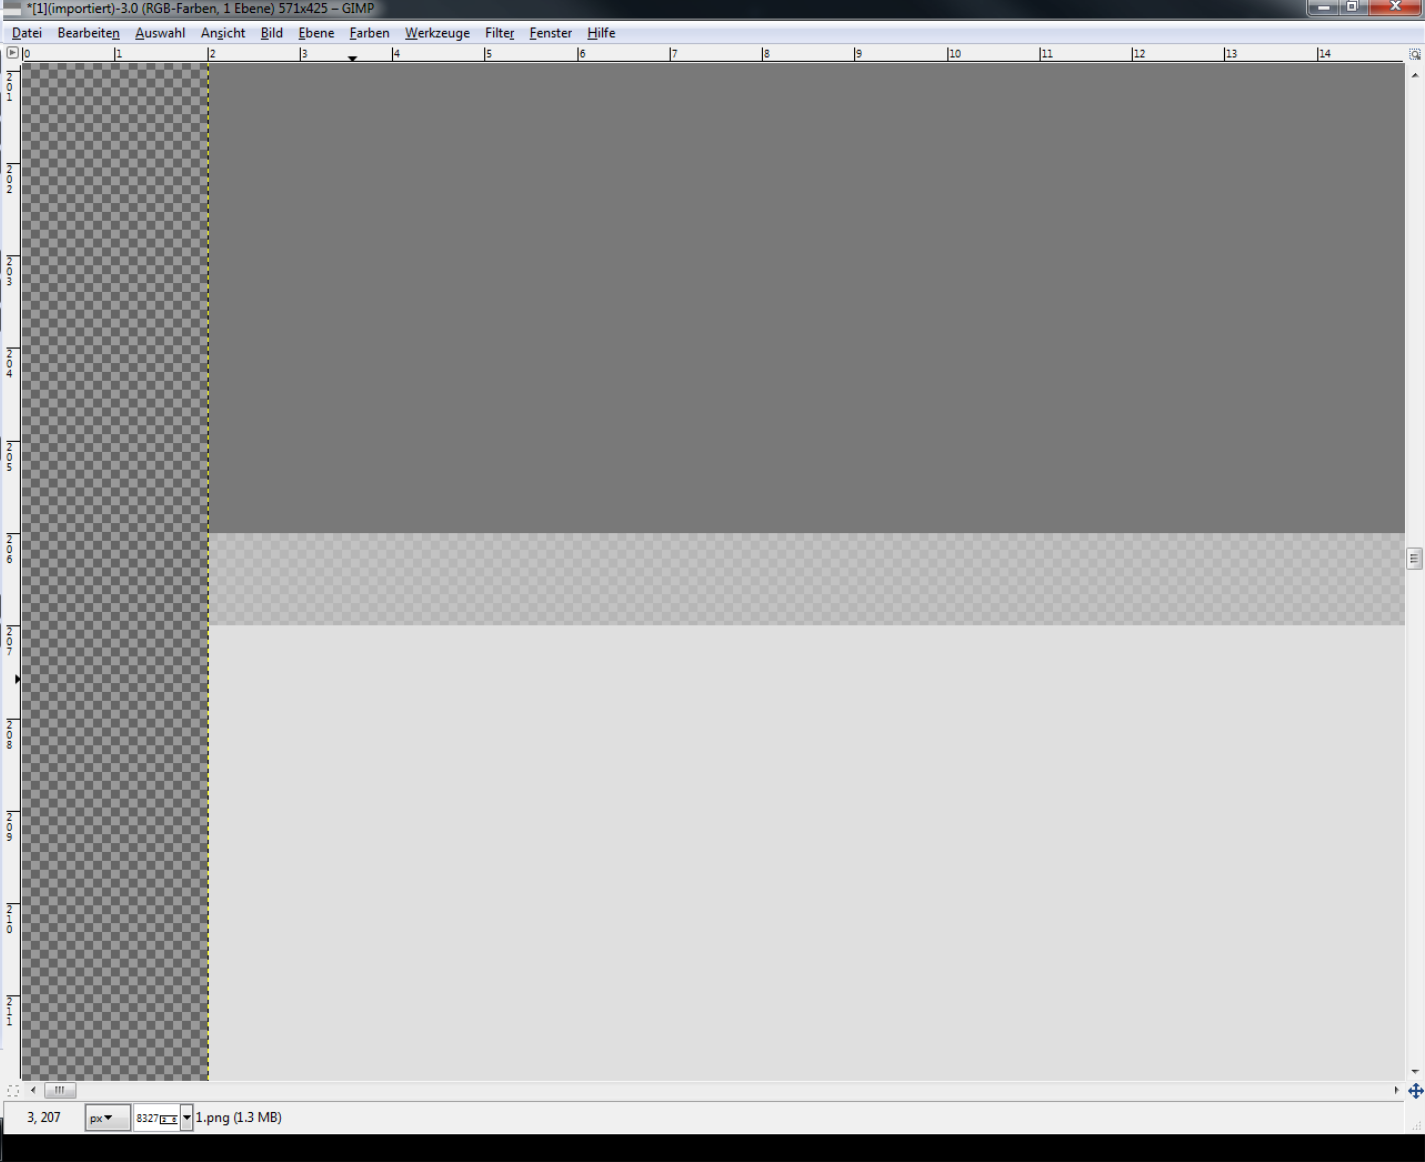 Inkscape png export: color at the boundary of touching rectangles.